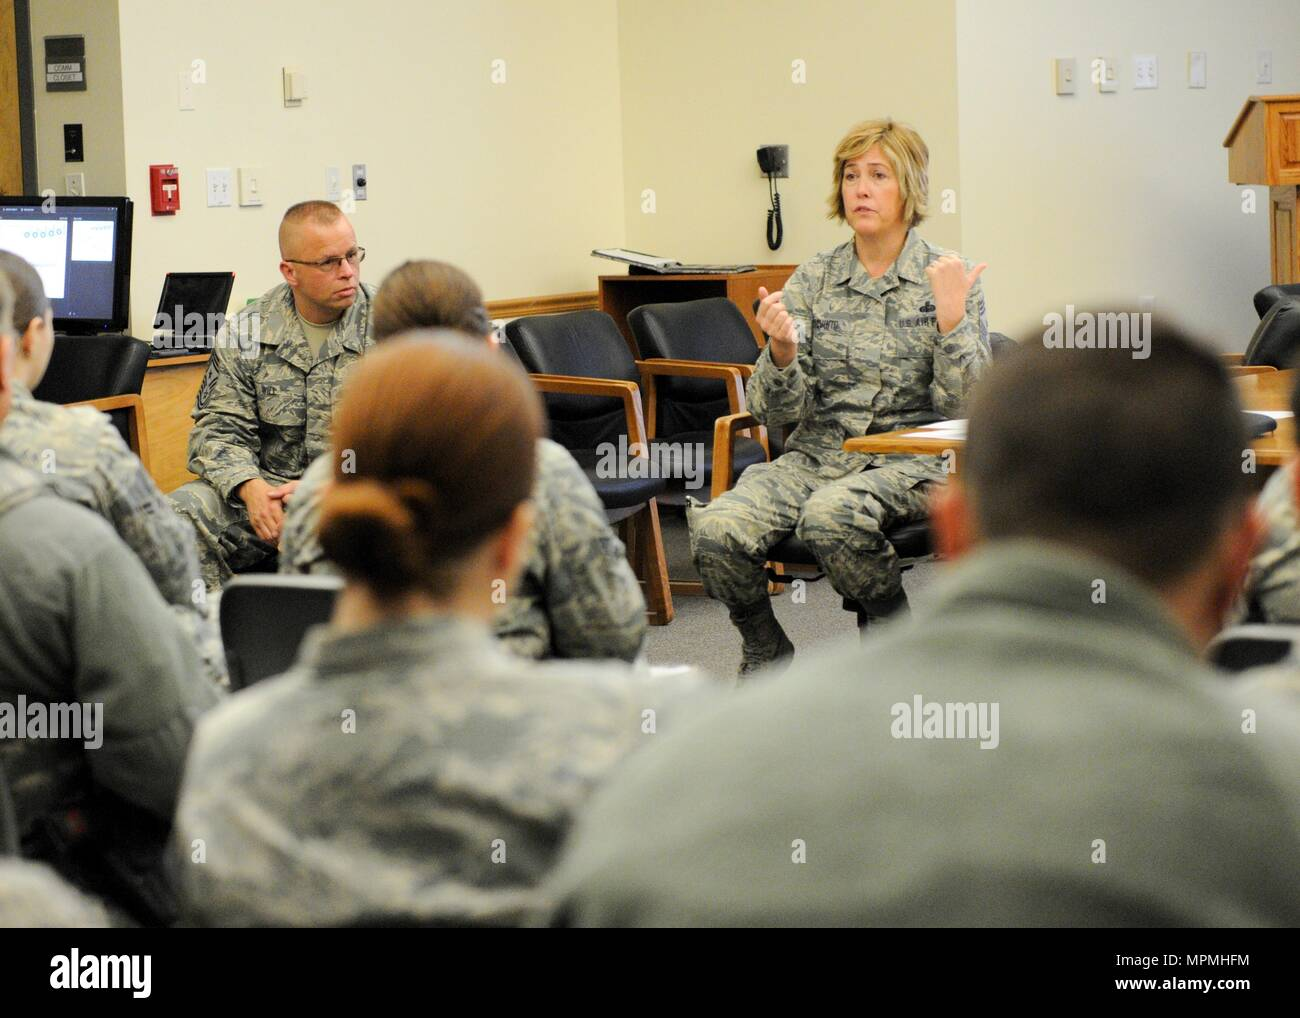 Chief Master Sergeant Amy R. Giaquinto, Air National Guard Command Chief for New York visits the 174th attack wing enlisted council meeting at Hancock field in Syracuse NY on April 1, 2017.  Giaquinto spoke to the structure and importance of the Enlisted Performance Review (EPR) as it applies to the members of the Air National Guard. (NY Air National Guard photo by Master Sgt. Lillique Ford/released) - Stock Image